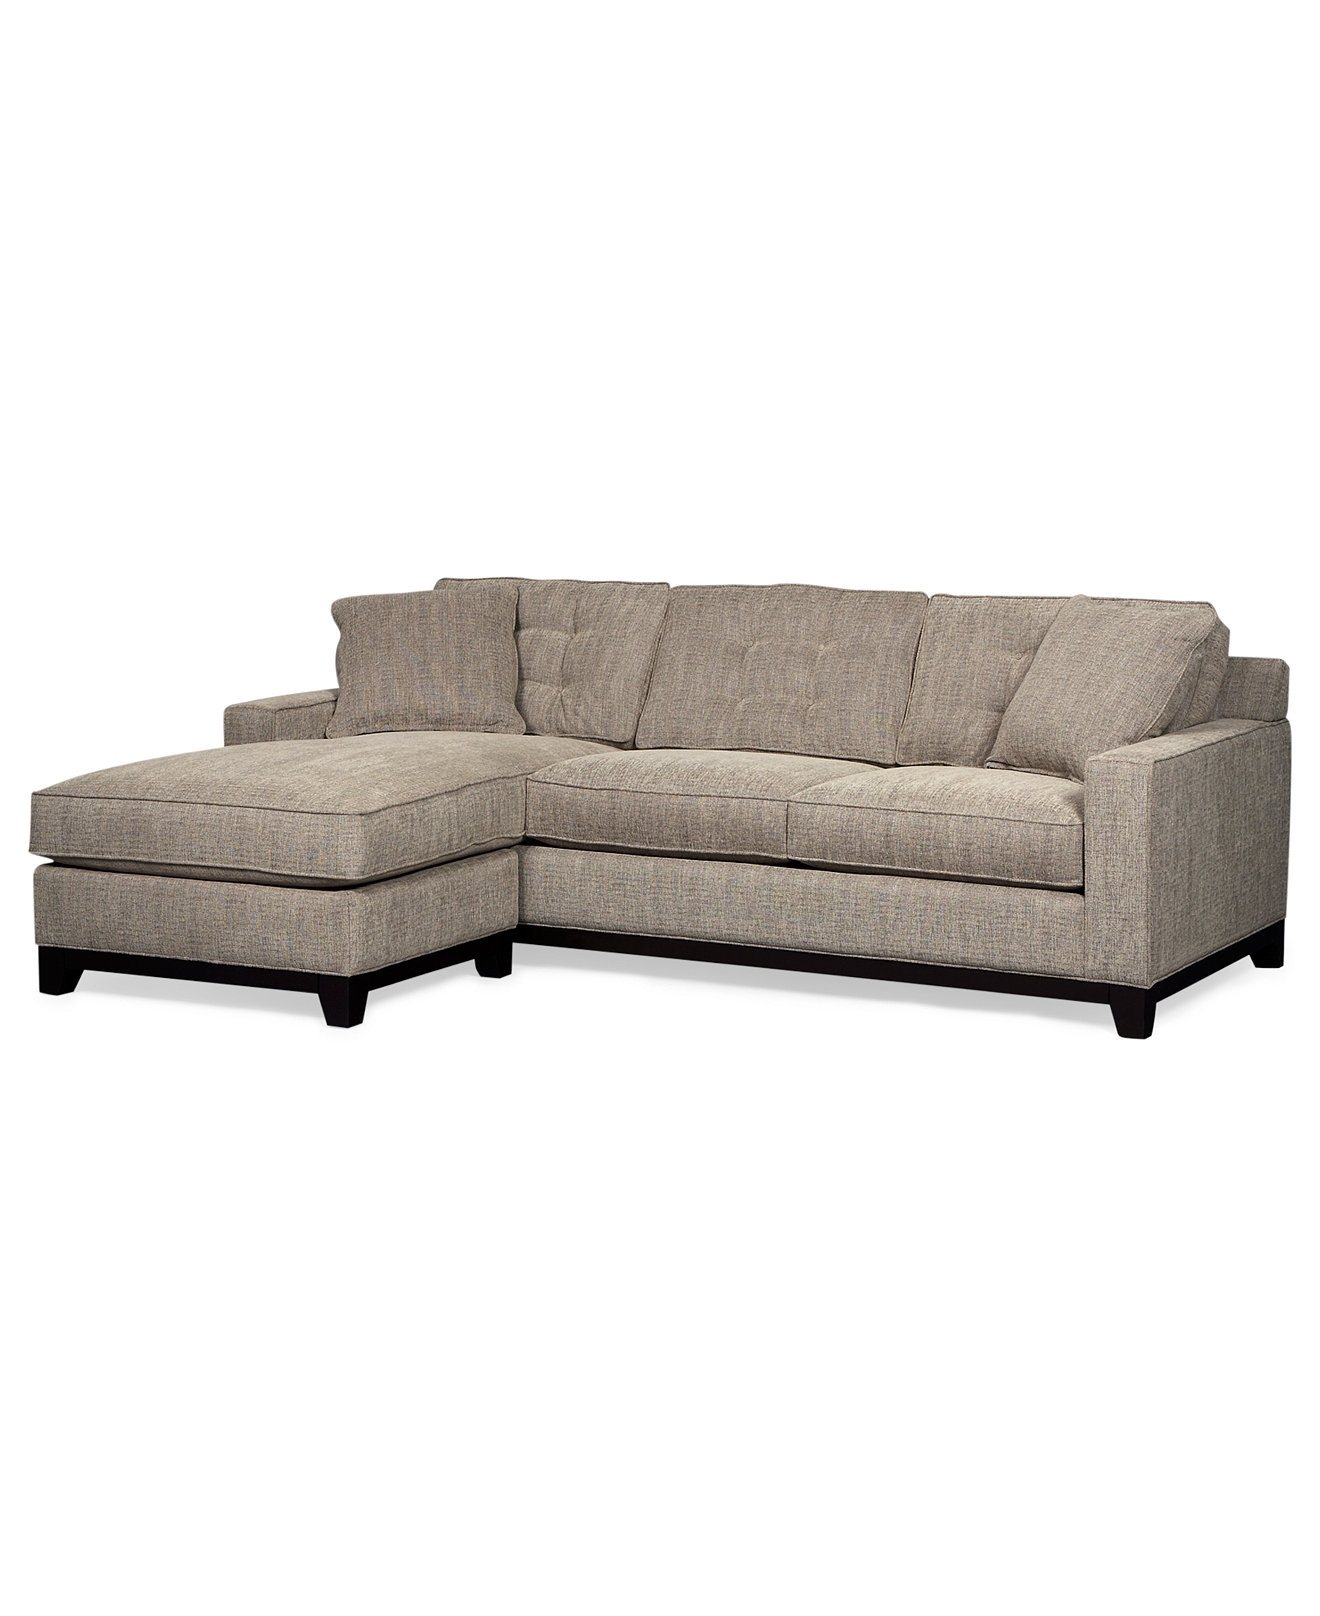 Clarke Fabric 2 Piece Sectional Queen Sleeper Sofa Bed – Shop All With Best And Newest Chaise Lounge Chairs At Macy's (View 10 of 15)